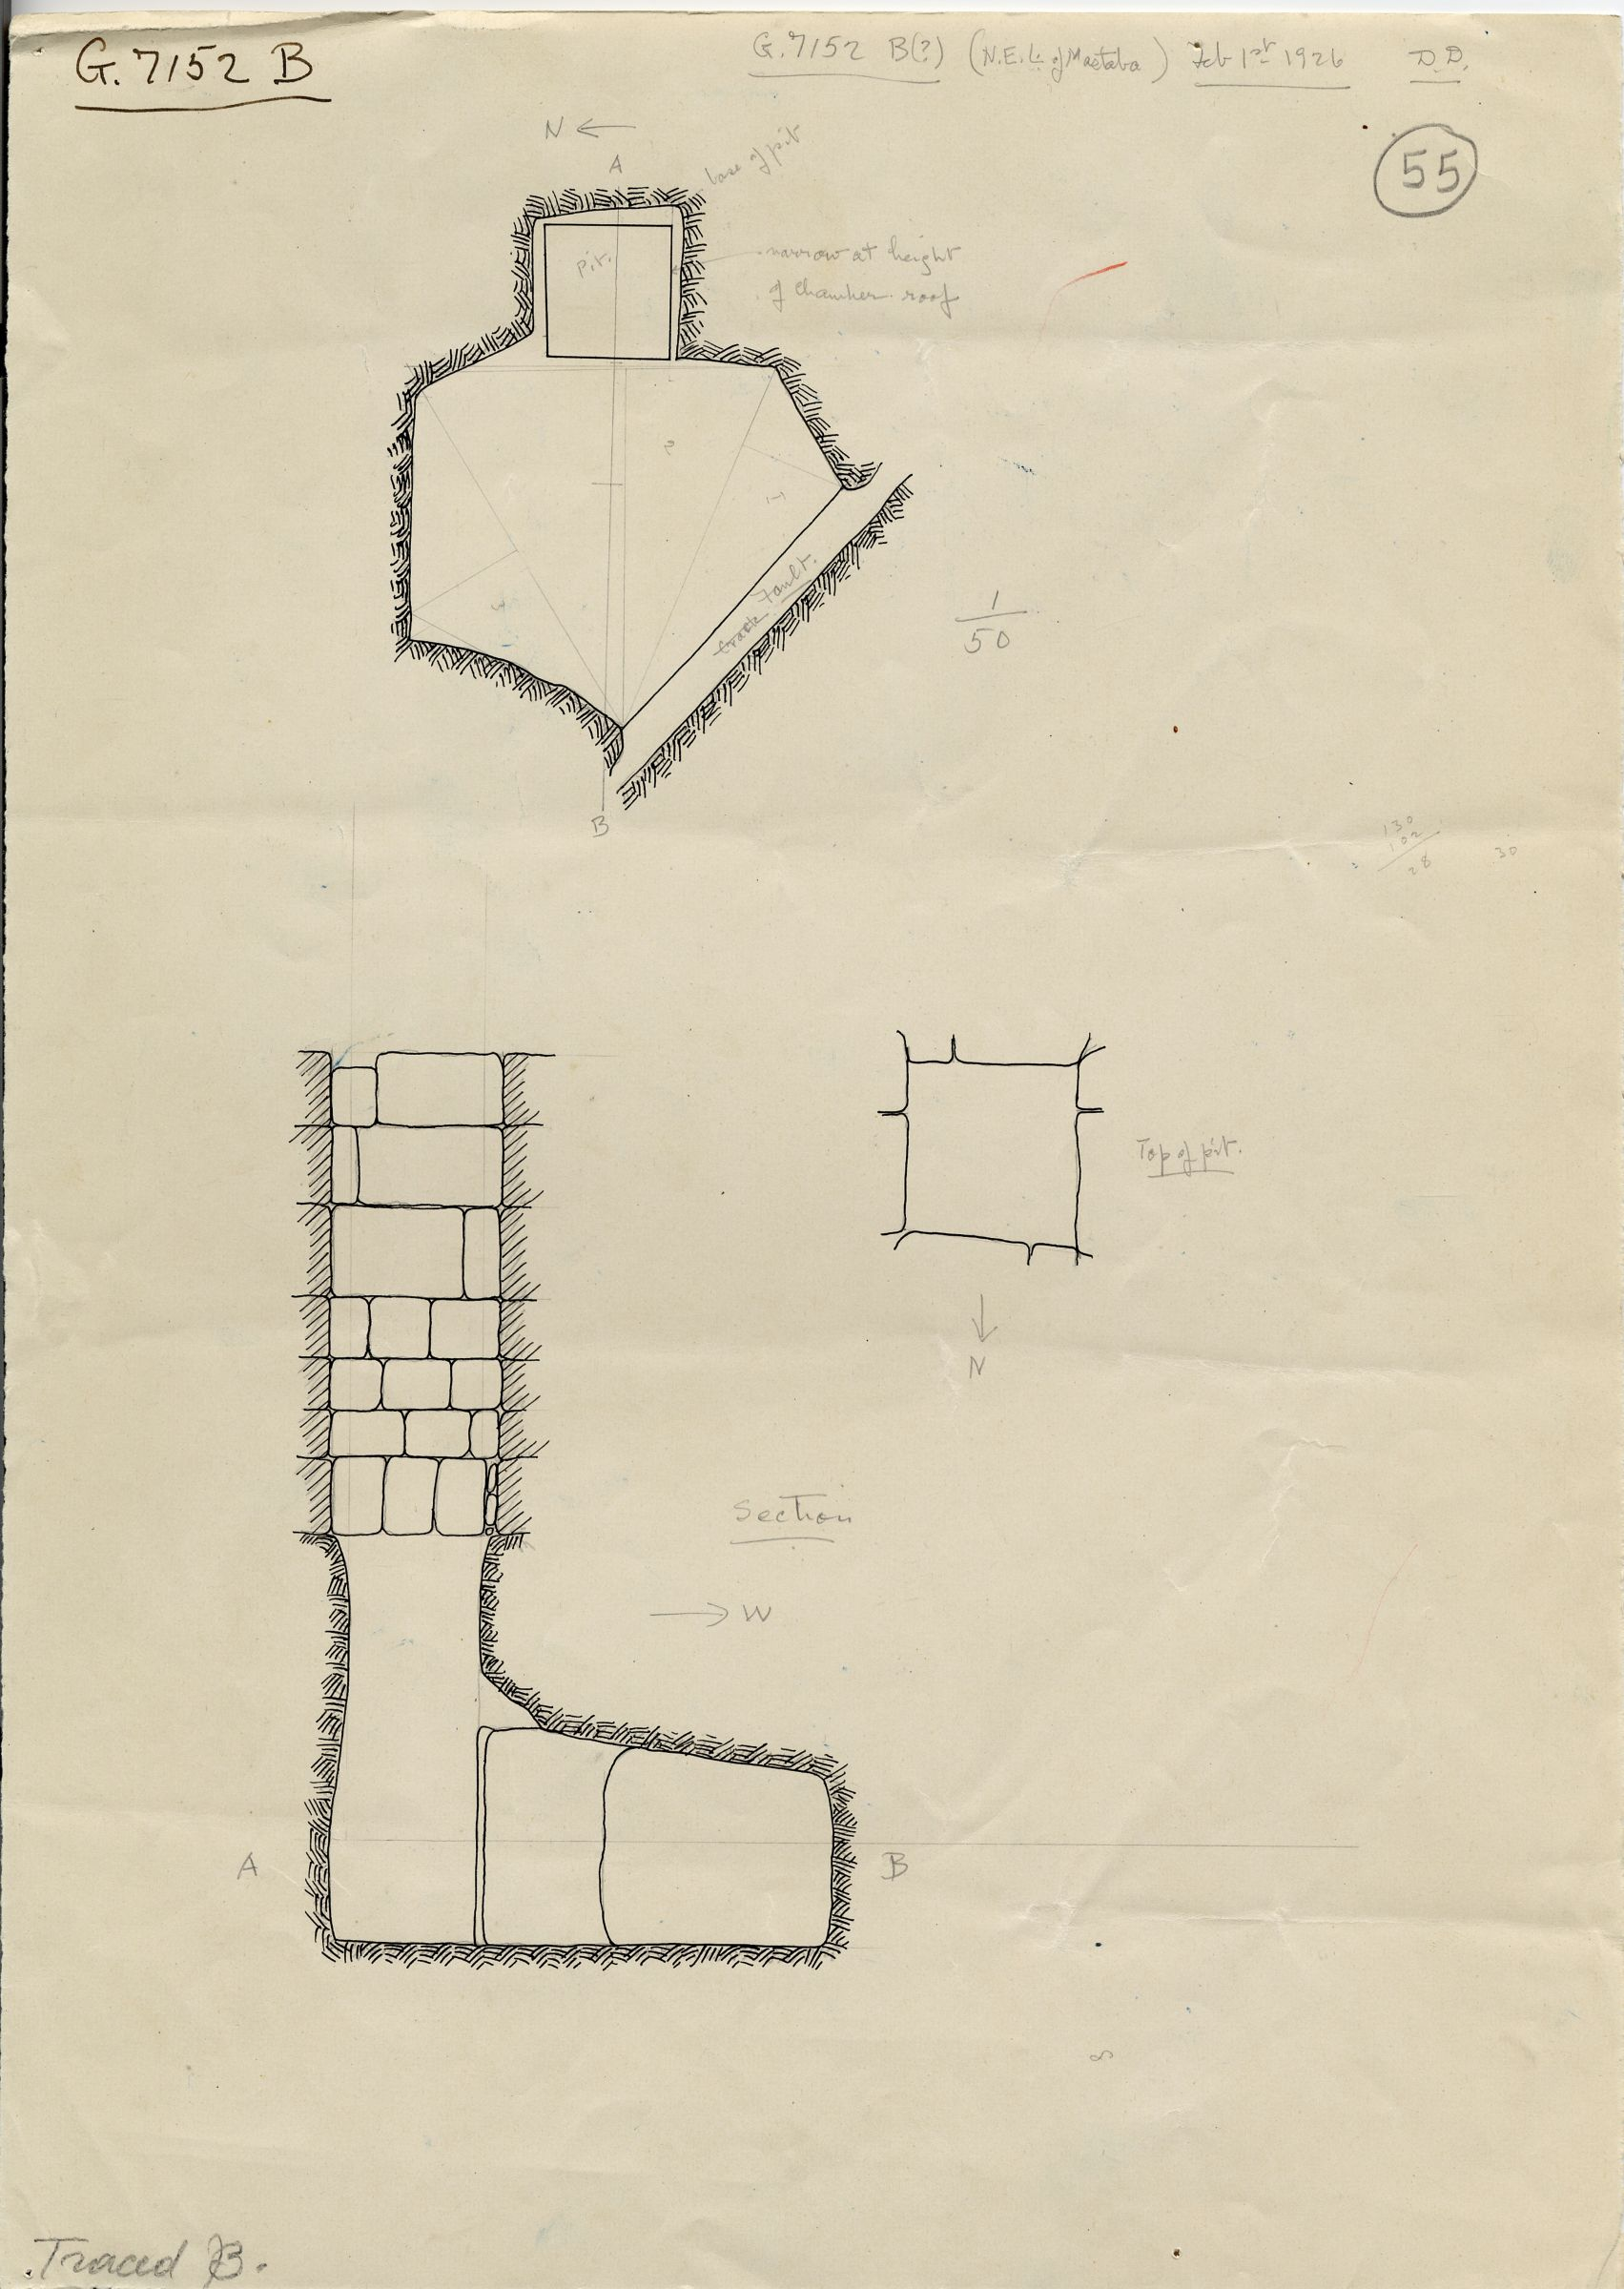 Maps and plans: G 7152, Shaft B